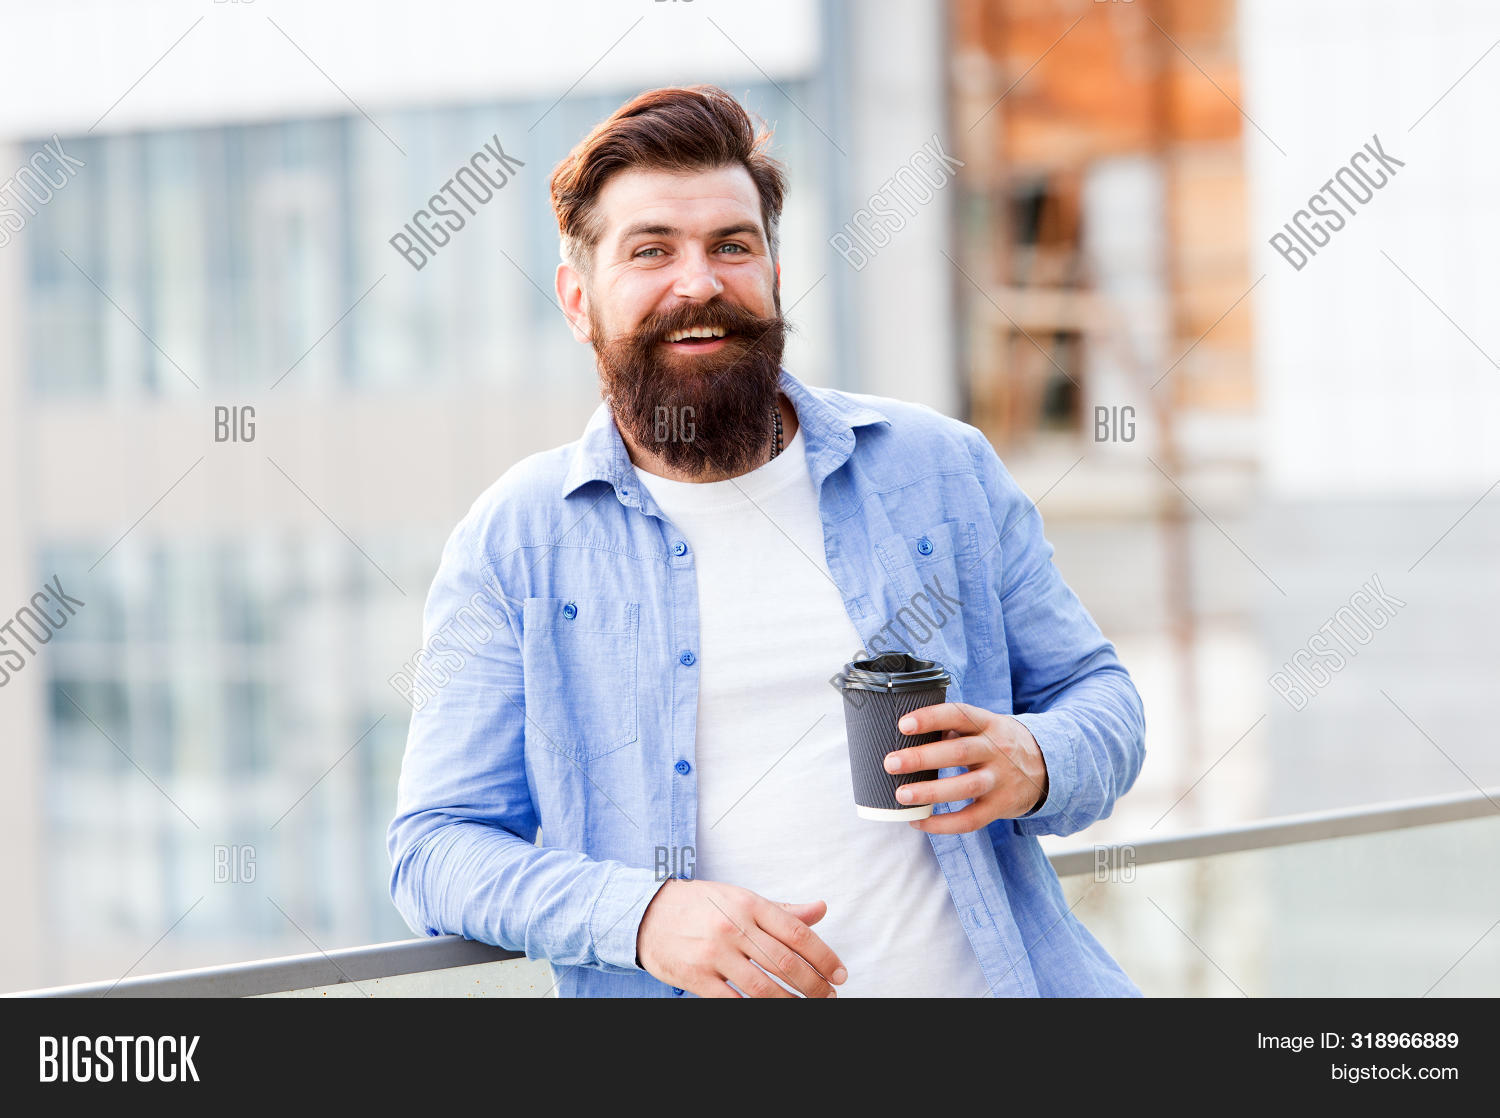 Coffee Completes Me. Make Yourself Useful. Man Drink Take Away Coffee. Bearded Man Relax Outdoors. C